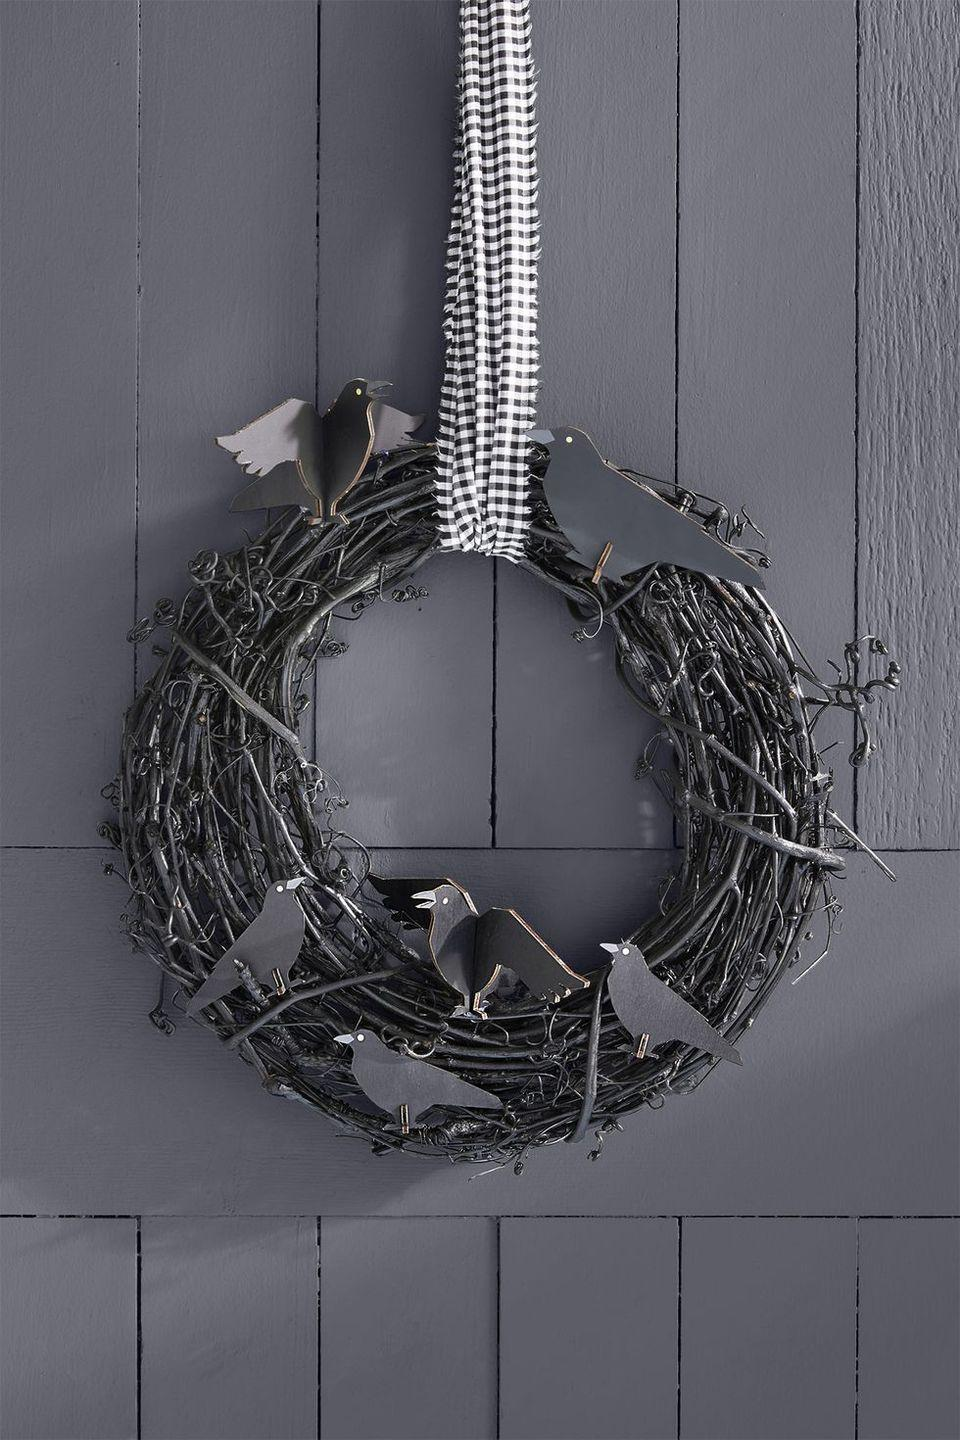 """<p>Make a subtle — but solemn — statement with this all-black wreath. Attach it to your door with a gingham or checkered ribbon for extra pizzazz. </p><p><a class=""""link rapid-noclick-resp"""" href=""""https://www.amazon.com/Darice-GPV10-Grapevine-Wreath-10-Inch/dp/B0054G5PXM/?tag=syn-yahoo-20&ascsubtag=%5Bartid%7C10055.g.421%5Bsrc%7Cyahoo-us"""" rel=""""nofollow noopener"""" target=""""_blank"""" data-ylk=""""slk:SHOP GRAPEVINE WREATHS"""">SHOP GRAPEVINE WREATHS</a></p><p><strong>RELATED:</strong> <a href=""""https://www.goodhousekeeping.com/holidays/halloween-ideas/g4602/outdoor-yard-halloween-decorations/"""" rel=""""nofollow noopener"""" target=""""_blank"""" data-ylk=""""slk:Outdoor Halloween Decorations That'll Steal the Show"""" class=""""link rapid-noclick-resp"""">Outdoor Halloween Decorations That'll Steal the Show </a></p>"""